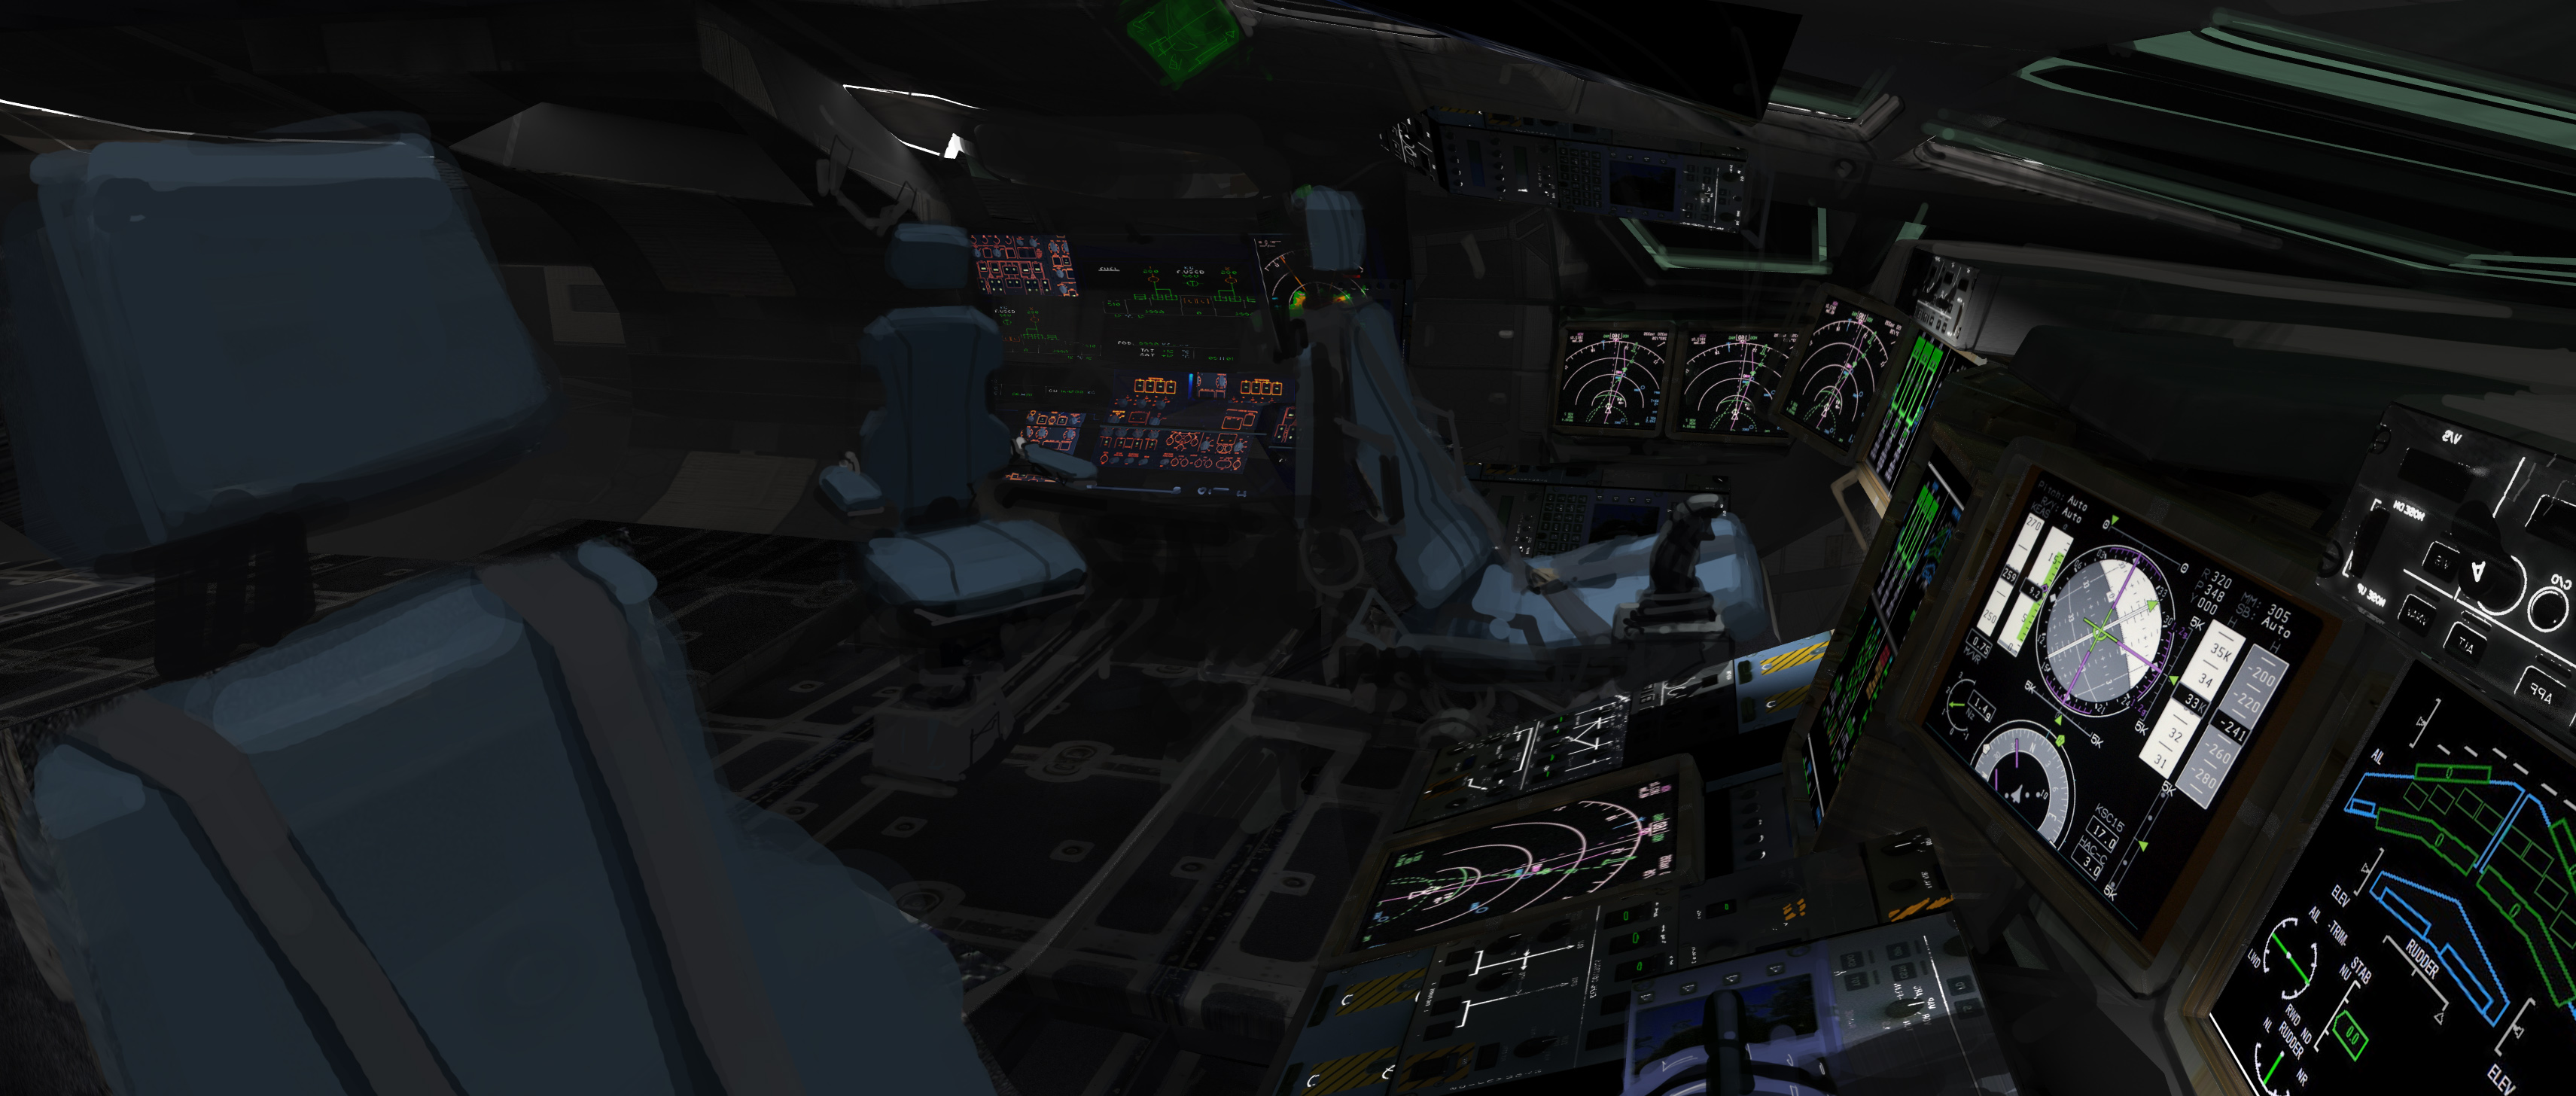 ranger_cockpit_from_pilots_seat02